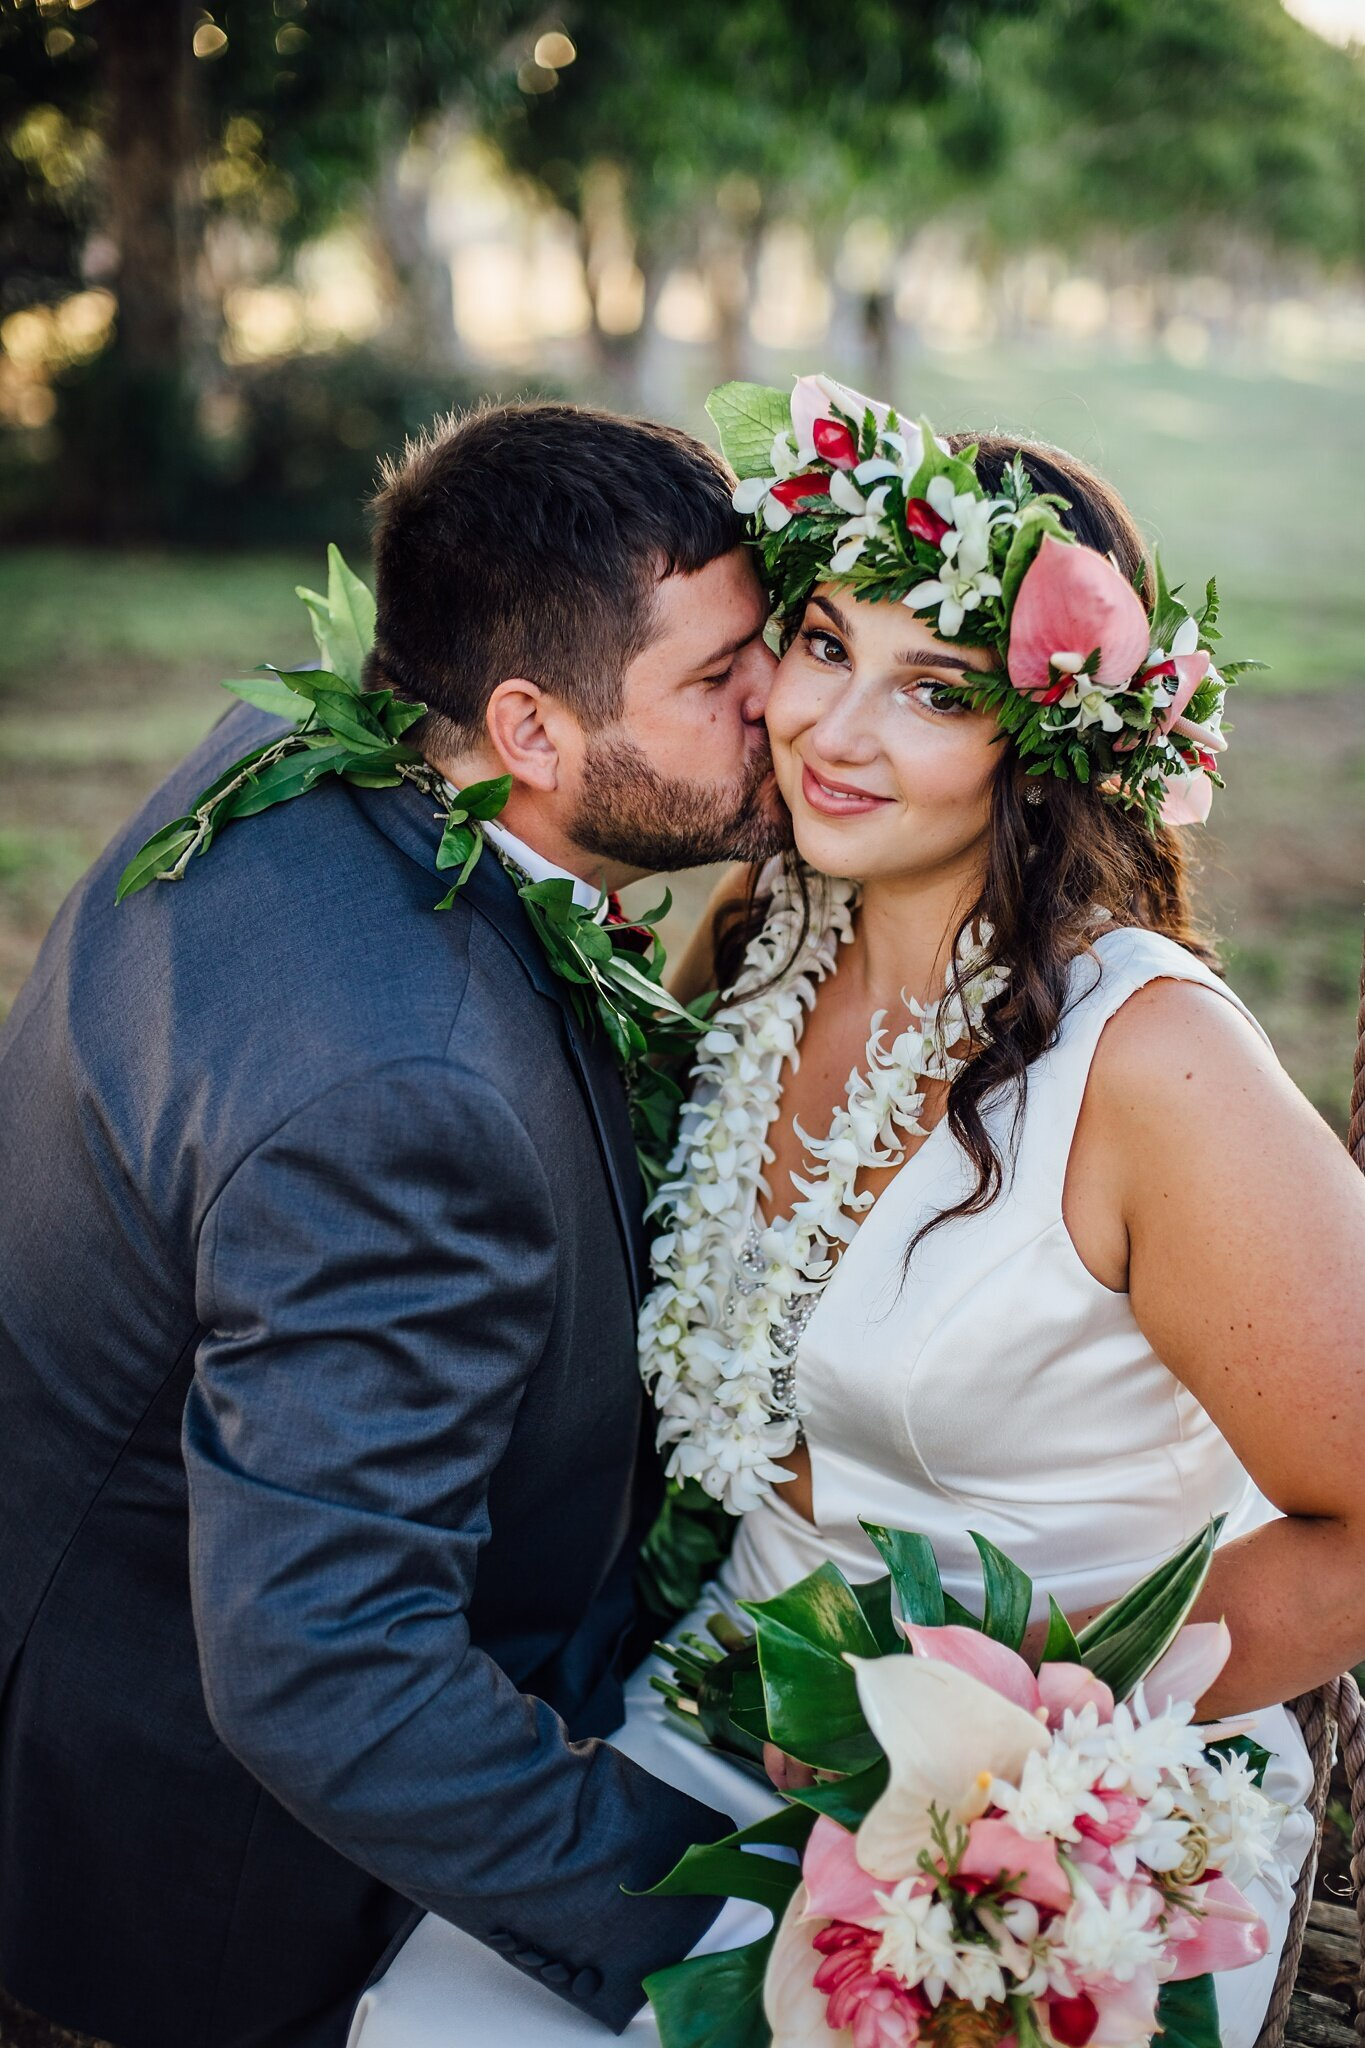 groom kissing bride on cheeks